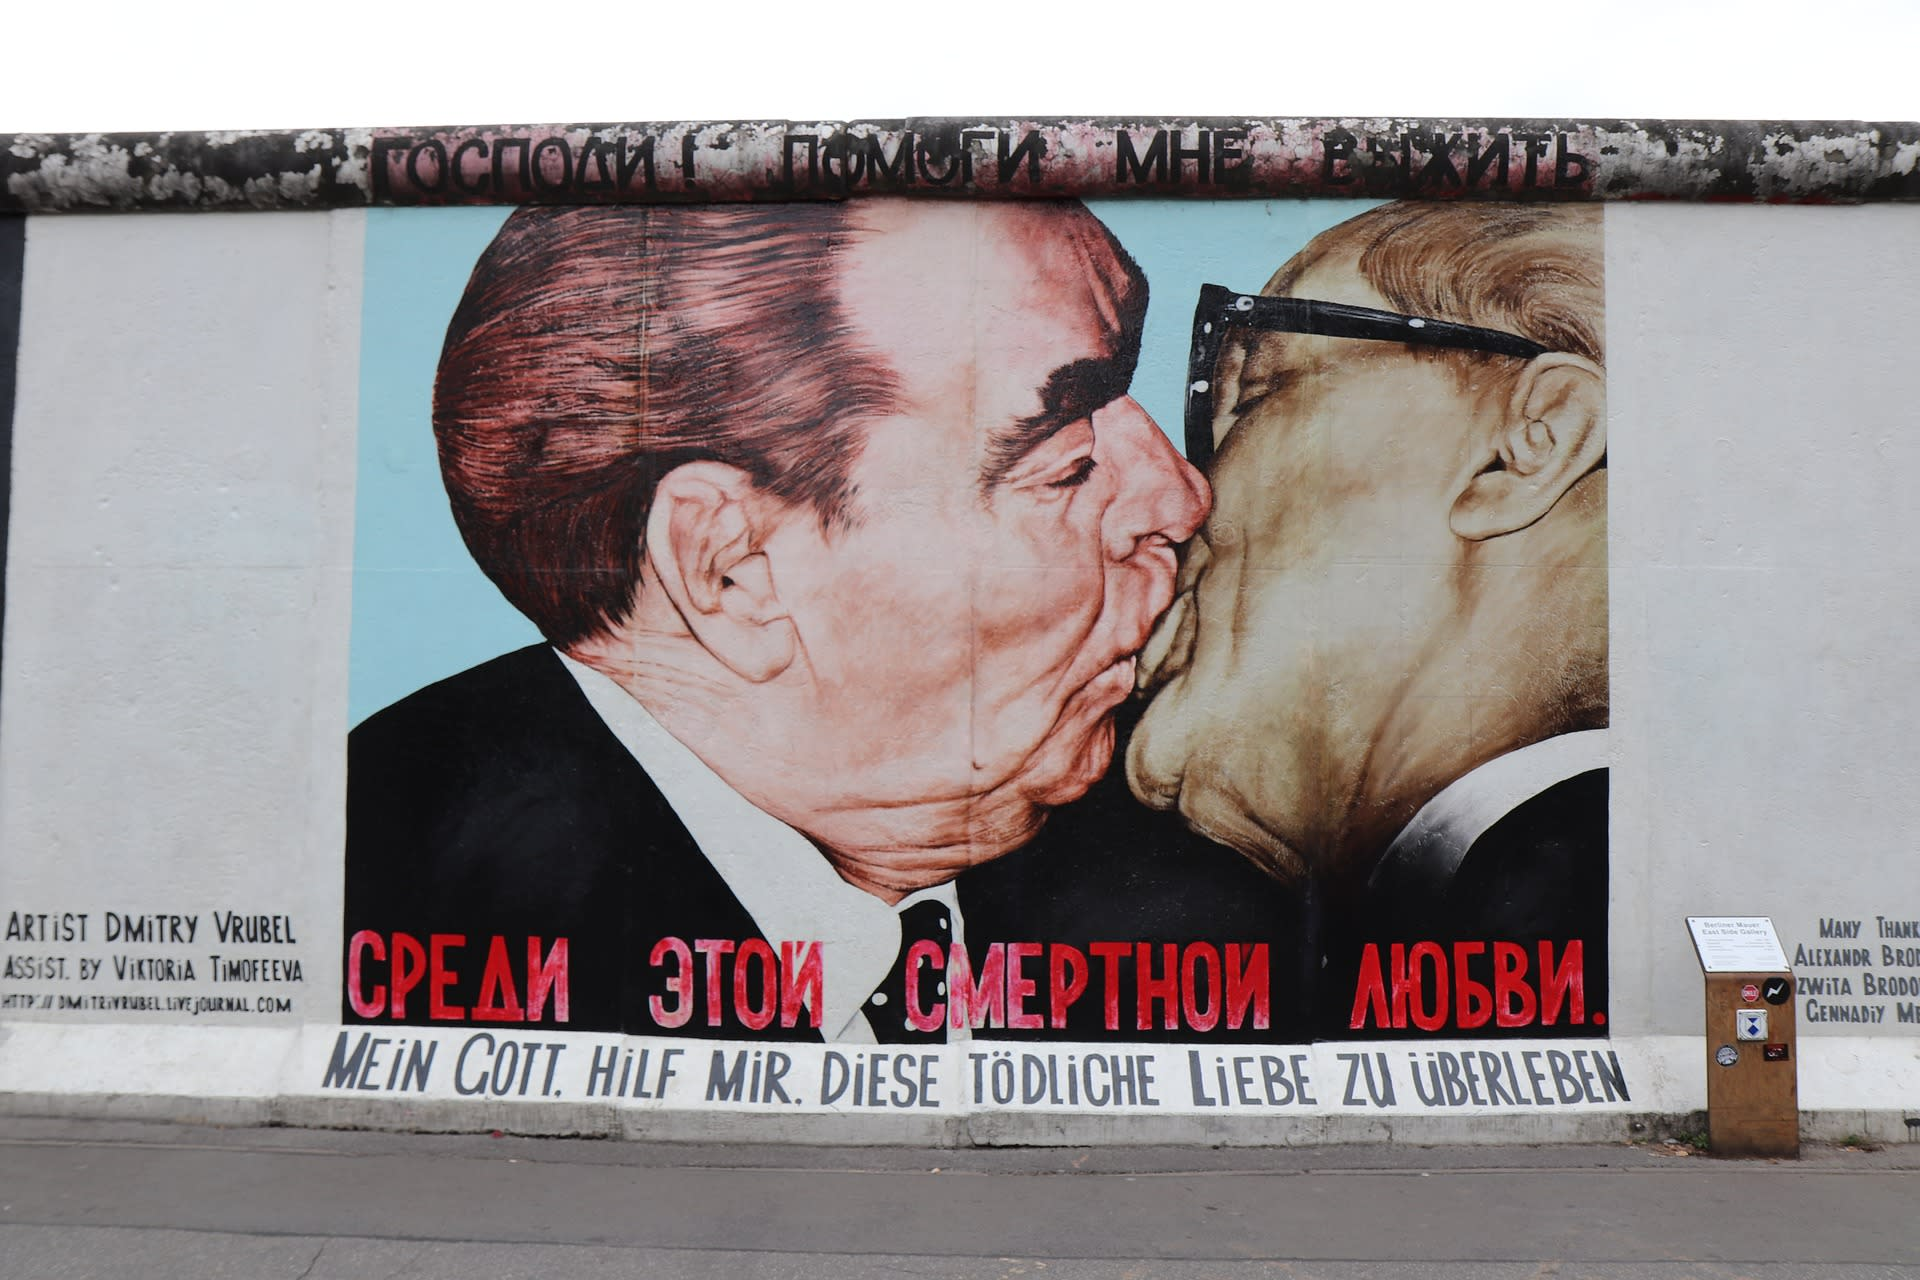 Berlin - East Side Gallery – Art, Division and a New City